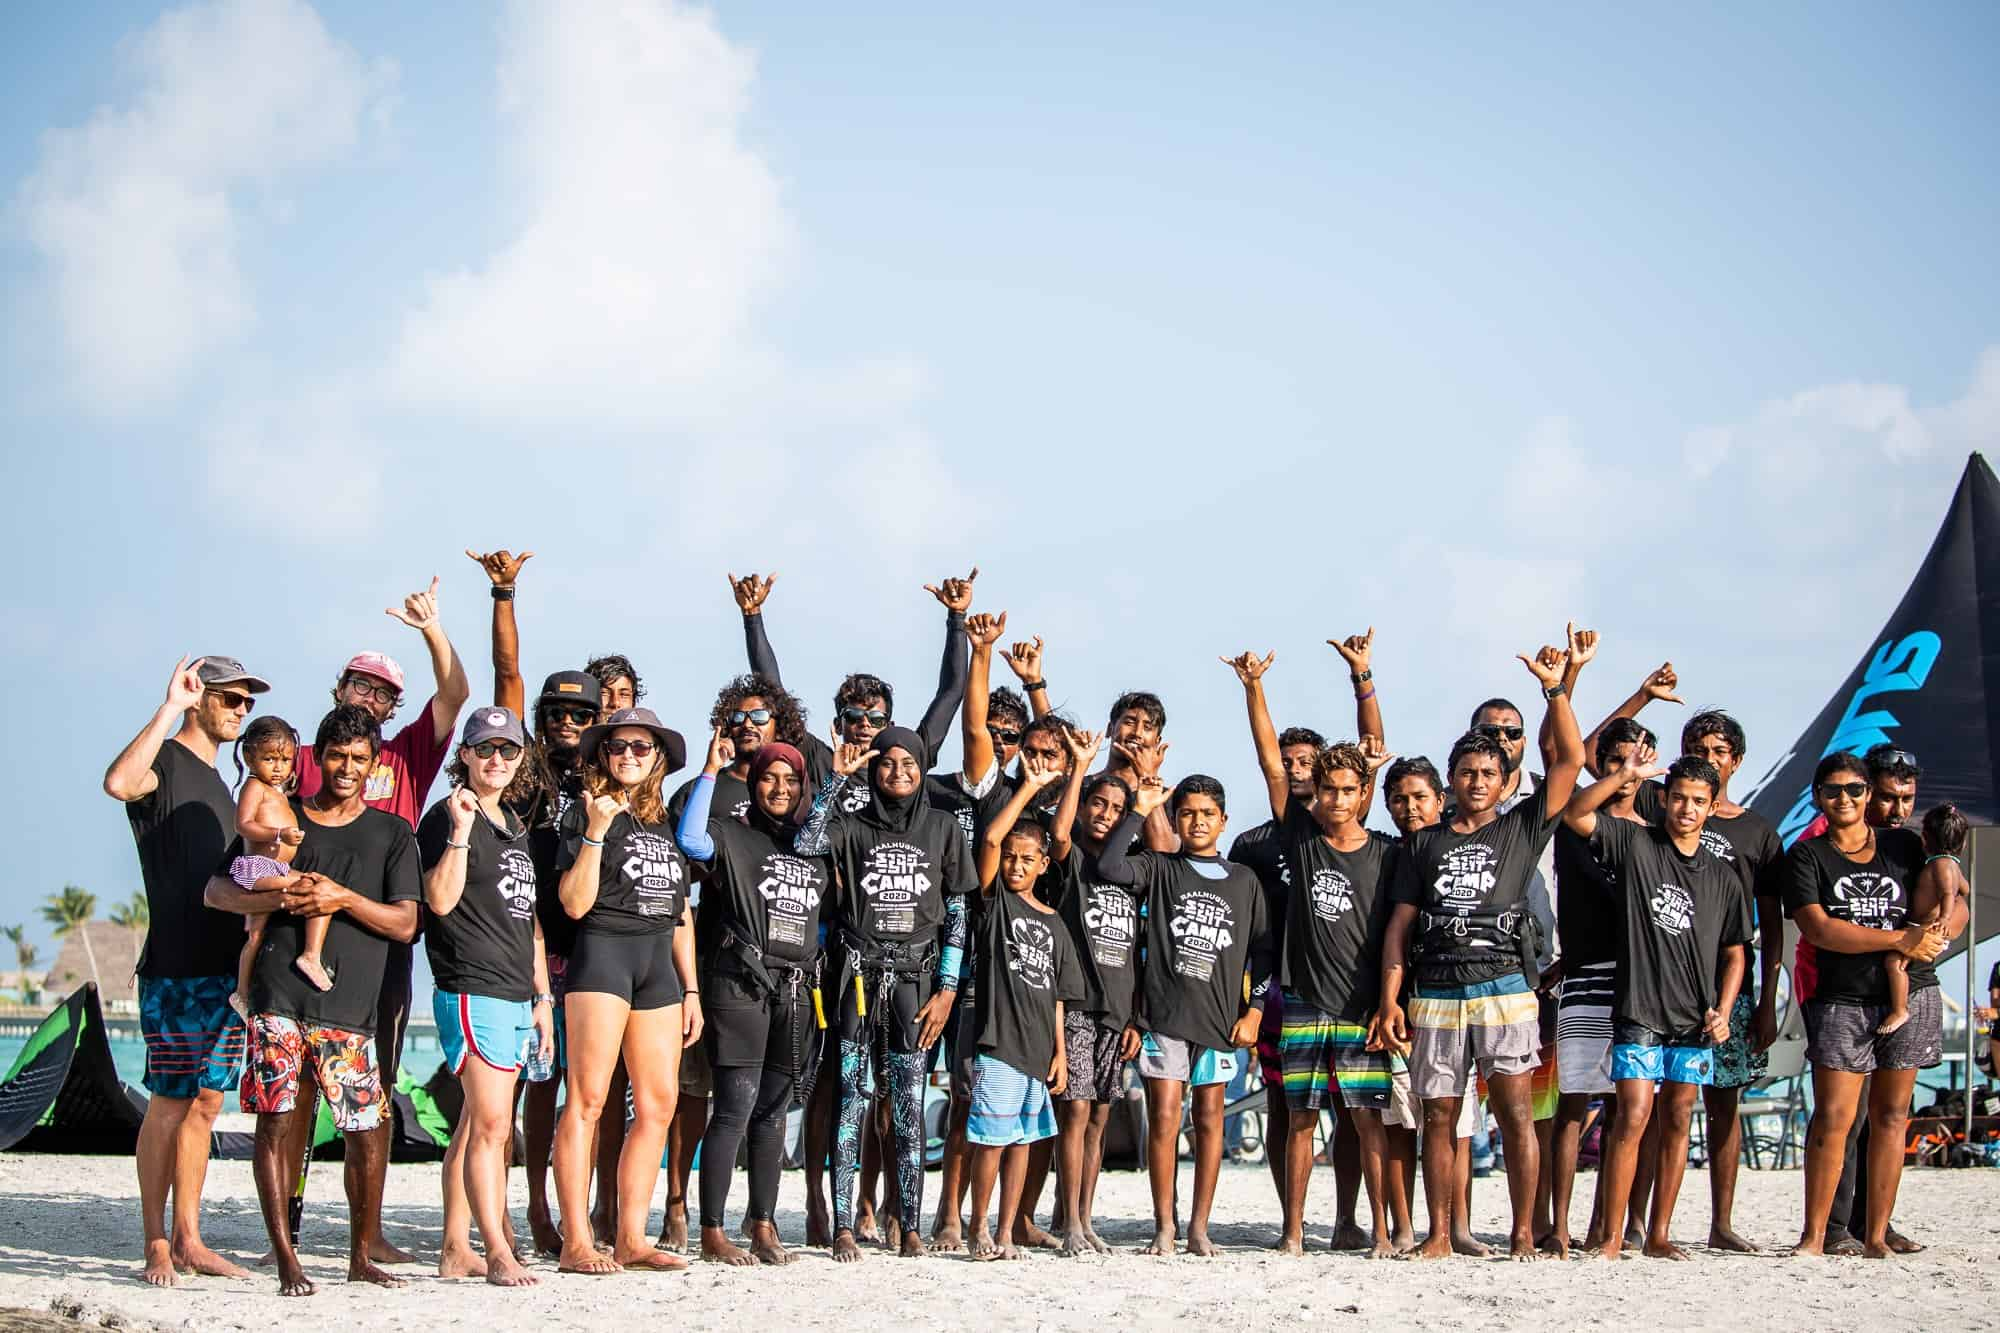 around two dozen people standing together on a sandbar smiling and pulling hang loose signs with their hands. It's the local Maldivian crowd that karolina was teaching how to kitesurf in the Maldives.